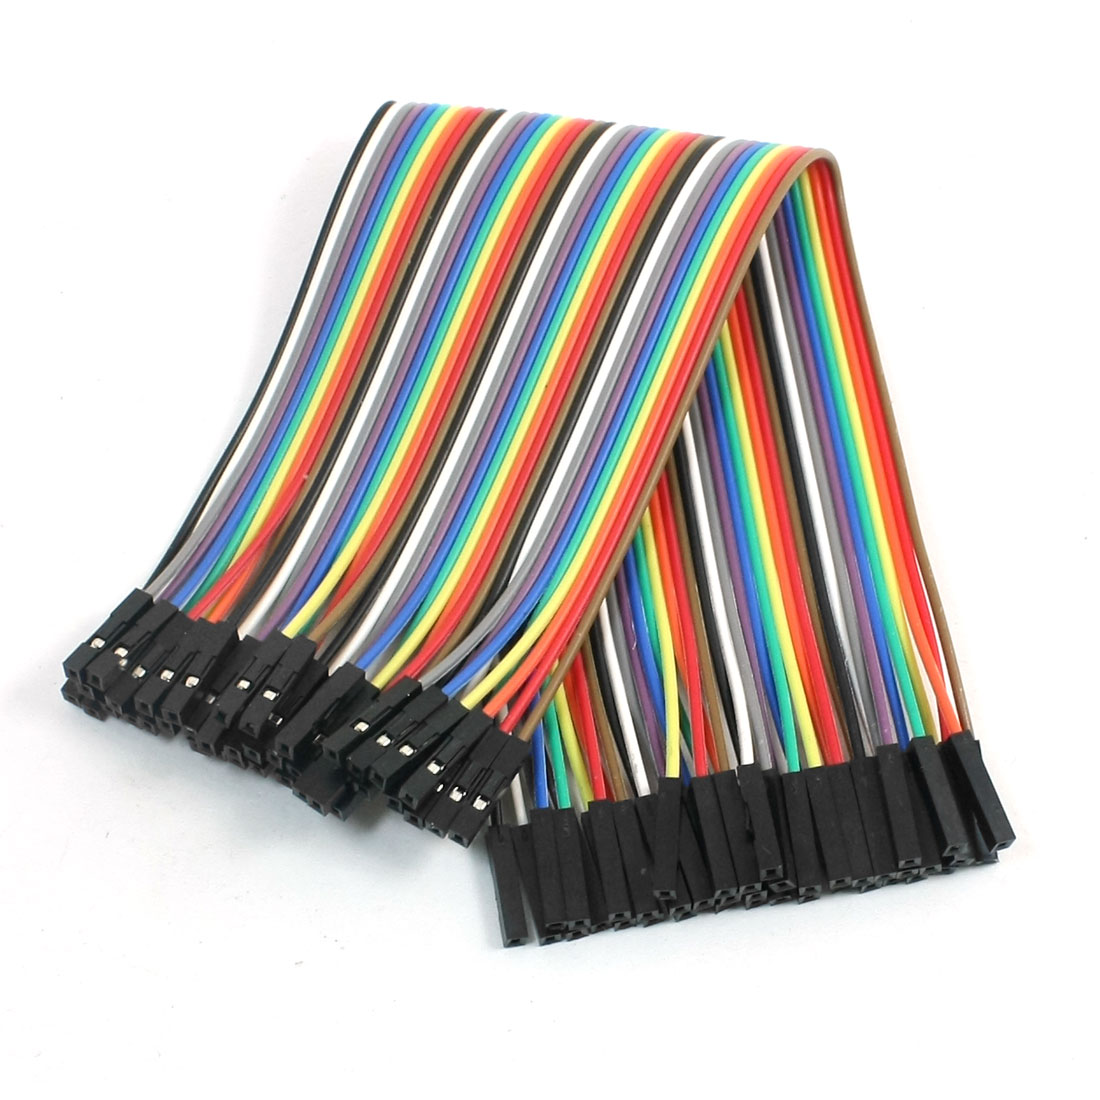 40pcs 1 Pin Female to Female Dual Head Jumper Cable Wires Colorful